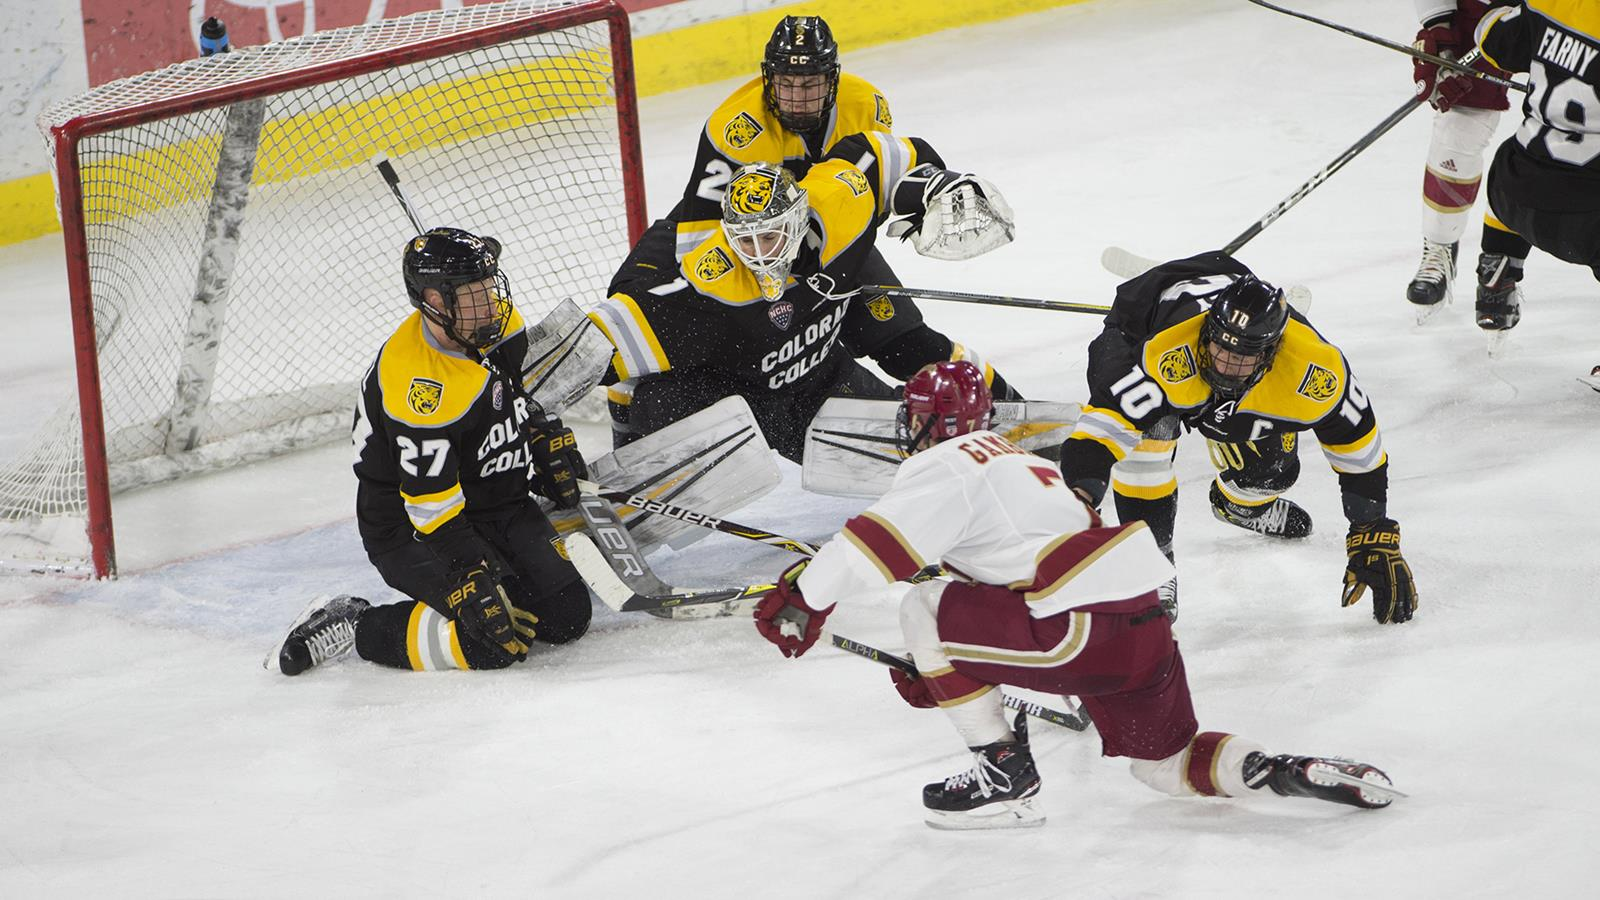 Five Notable Items - No. 1, Huge Step Forward For Colorado College, Who Were Picked Last, Against A Heavily Favored Denver Team